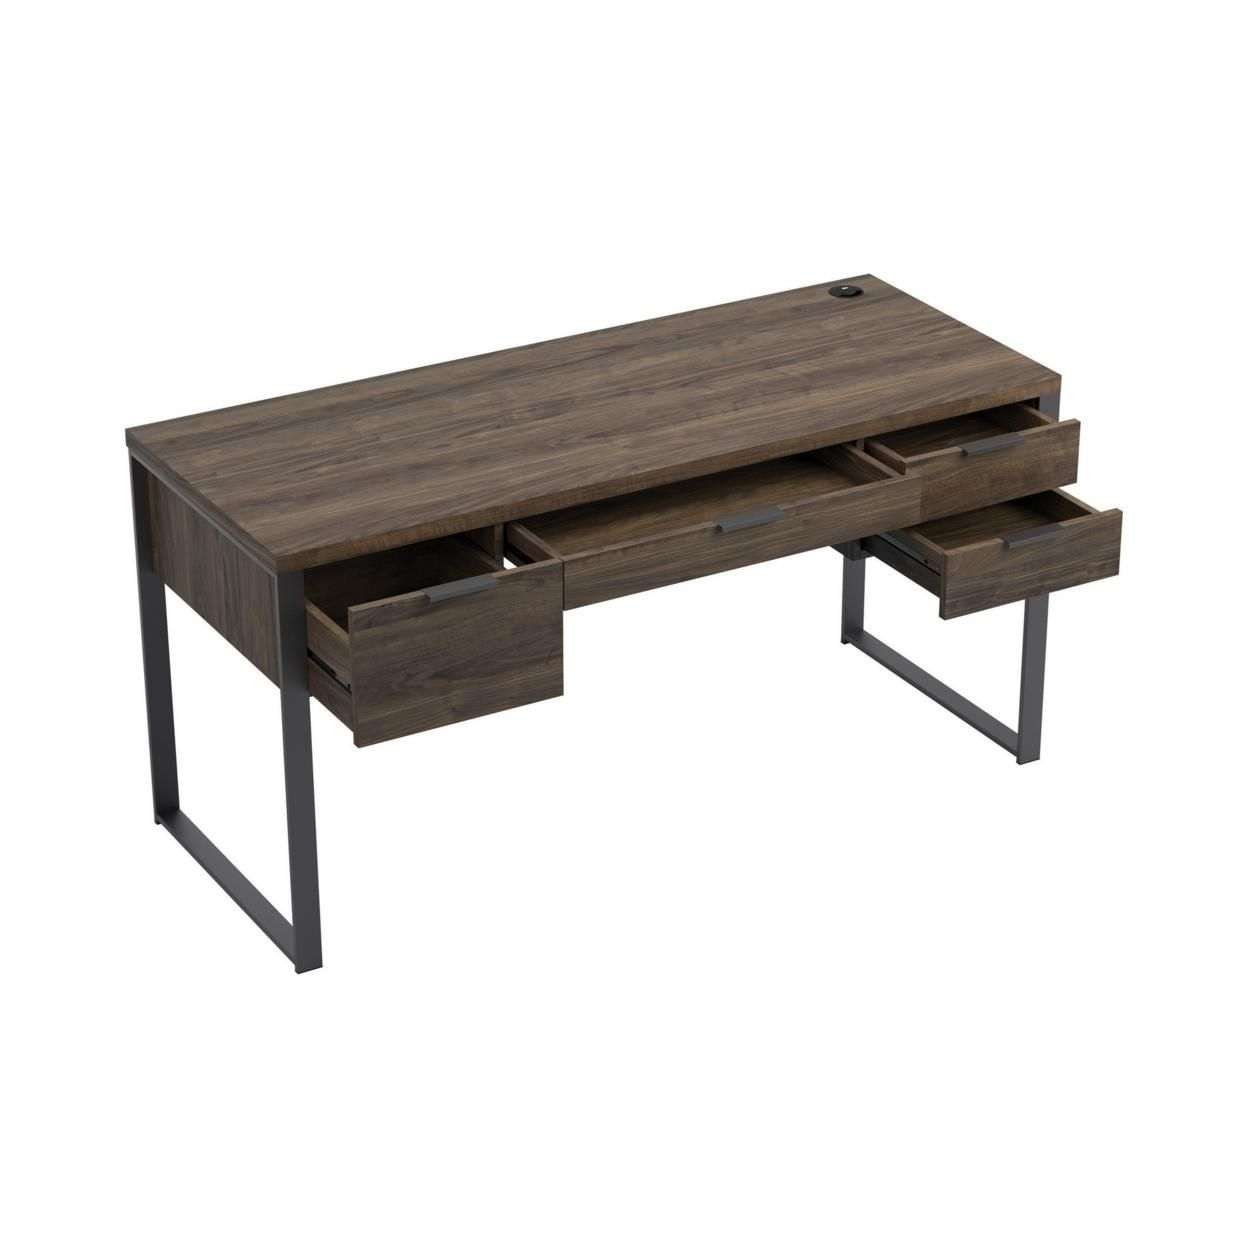 Wooden Writing Desk with 4 Drawers and Metal Base, Brown, Saltoro Sherpi